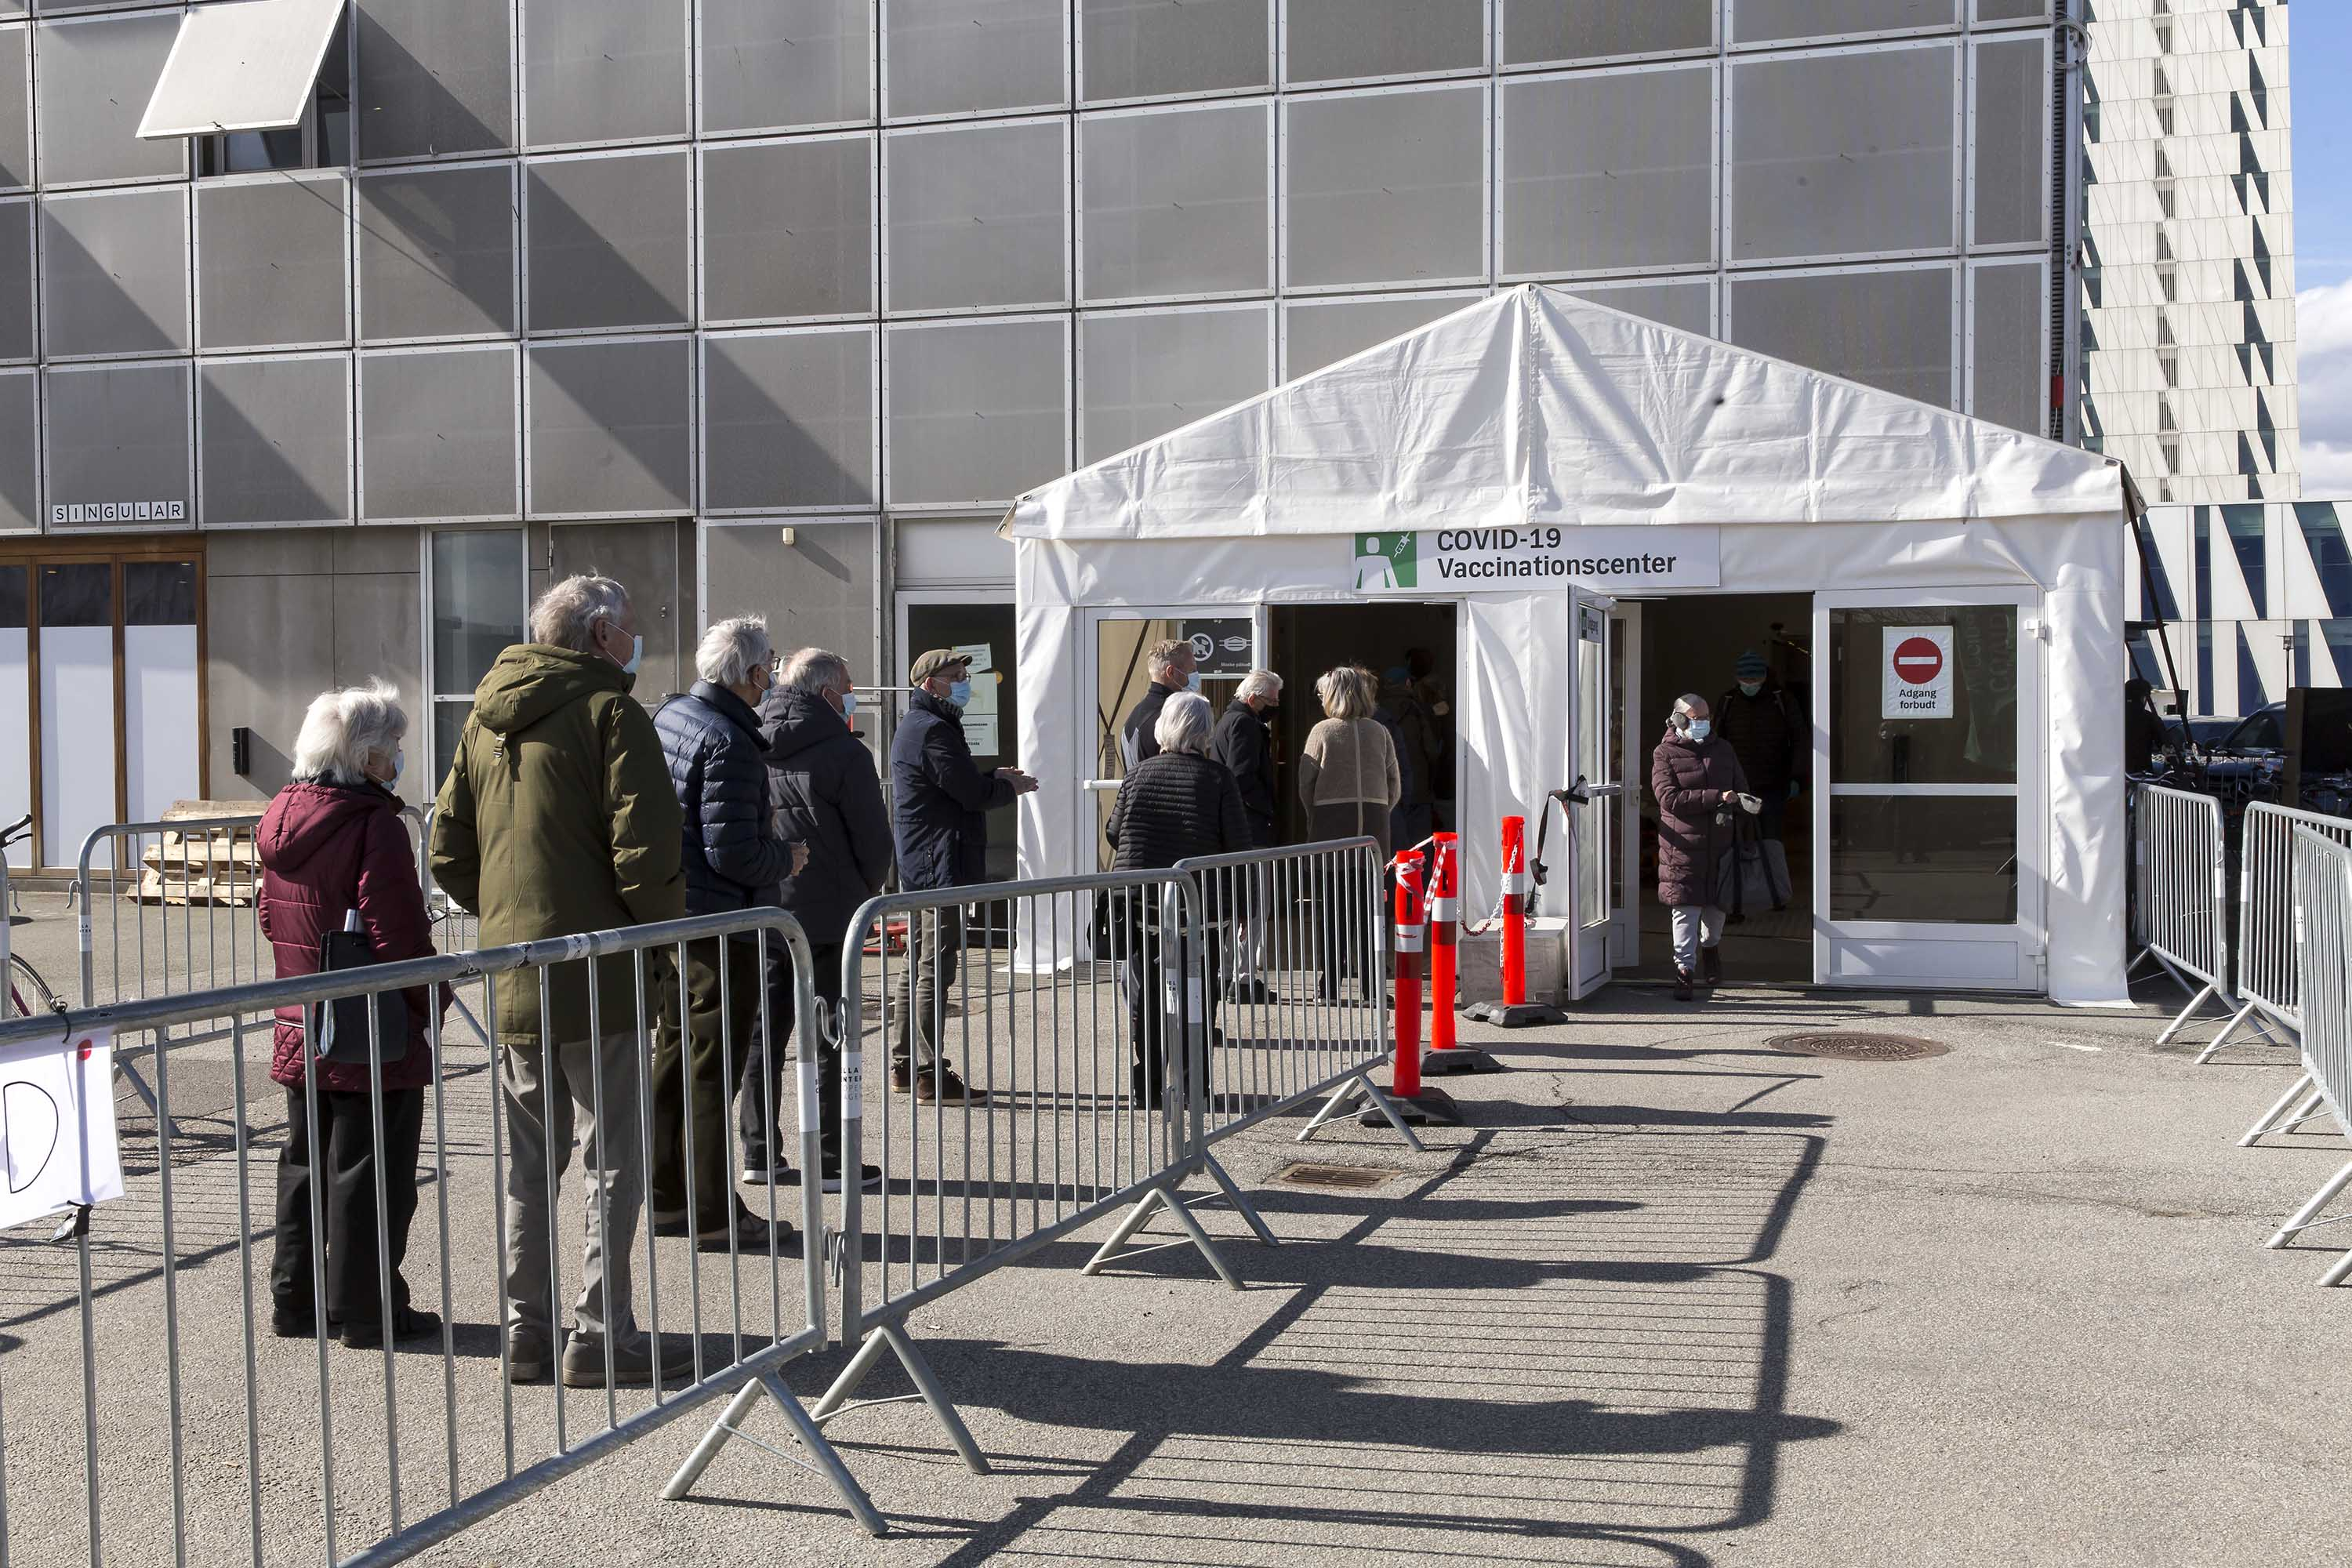 Citizens wait in line for a Covid-19 vaccination in Copenhagen, Denmark, on March 18.